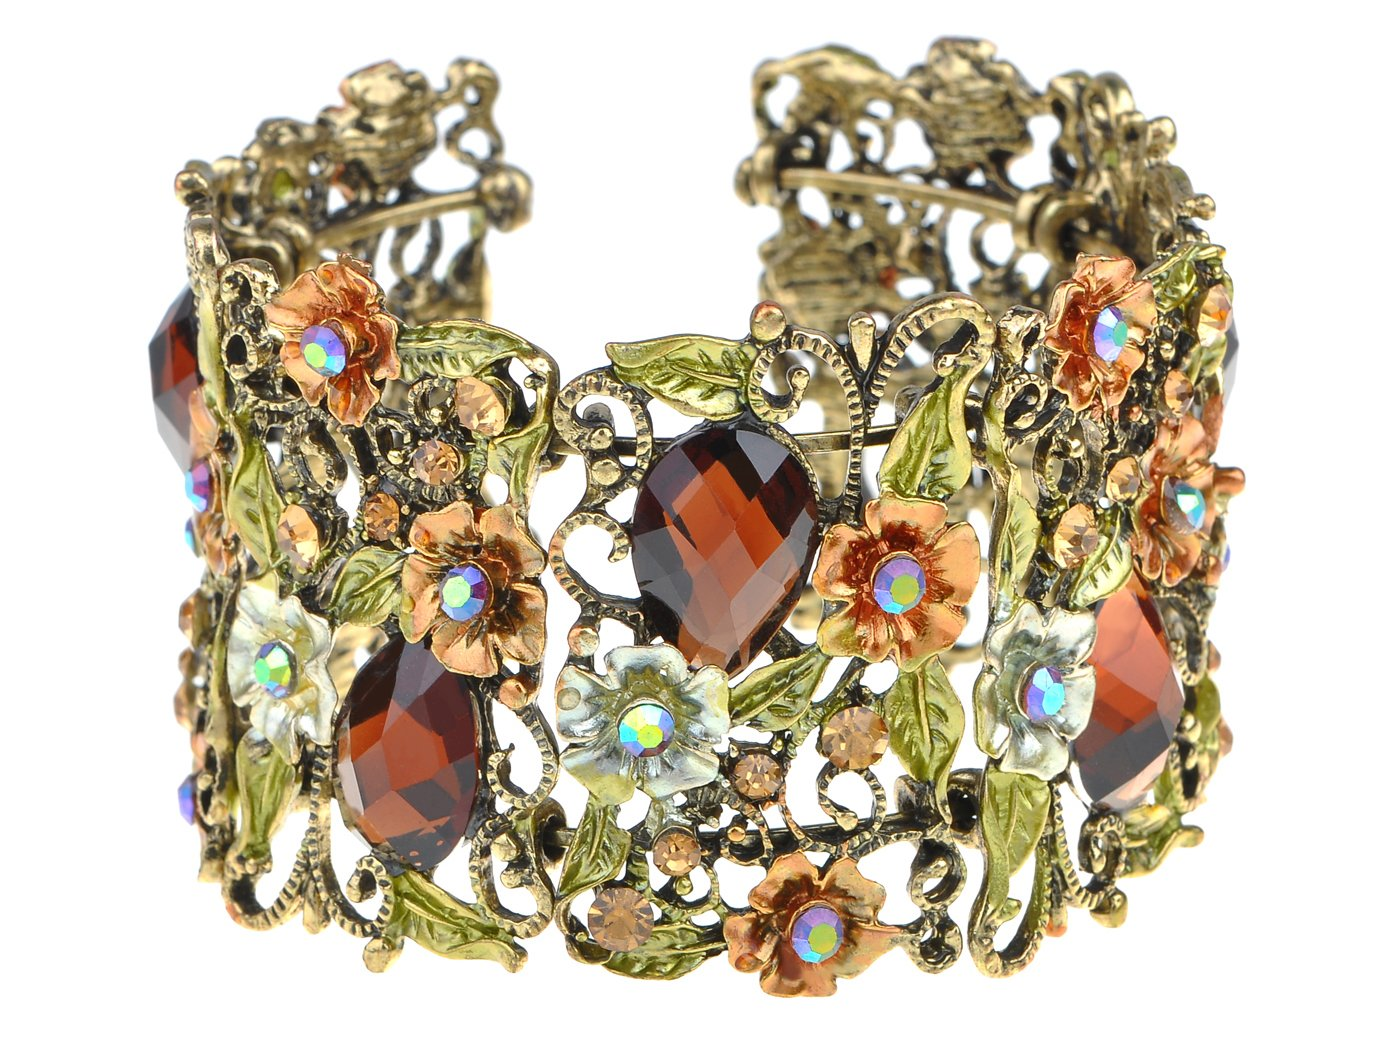 Alilang Antique Hollow Vintage Floral Topaz Crystal Rhinestone Flower Garden Bracelet Bangle Cuff